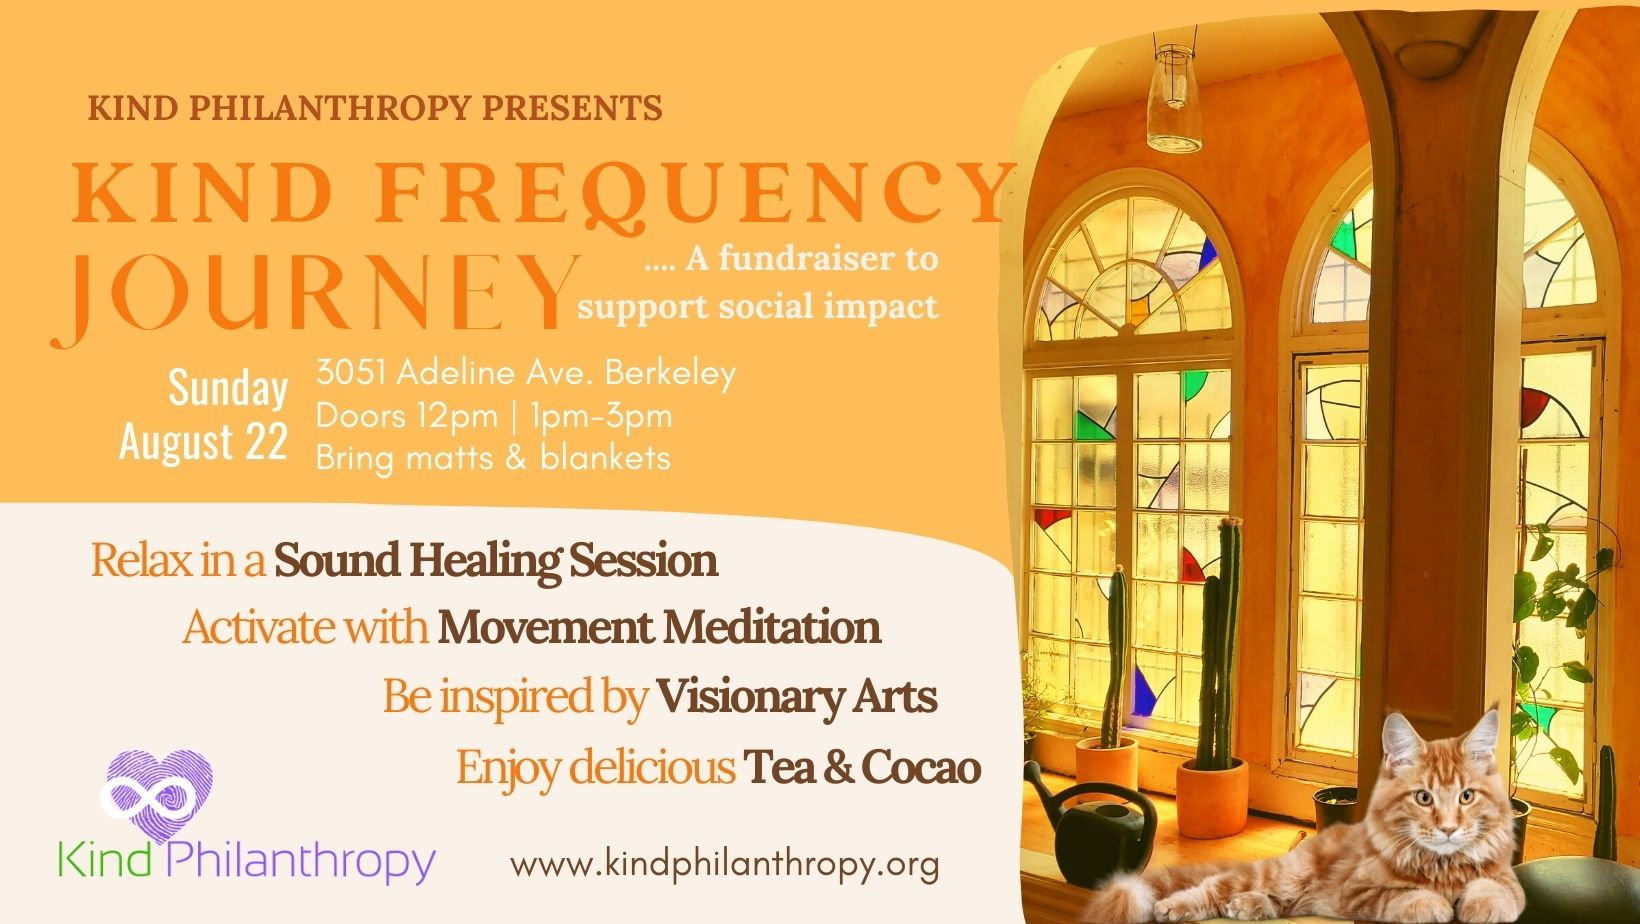 Kind Frequency Journey